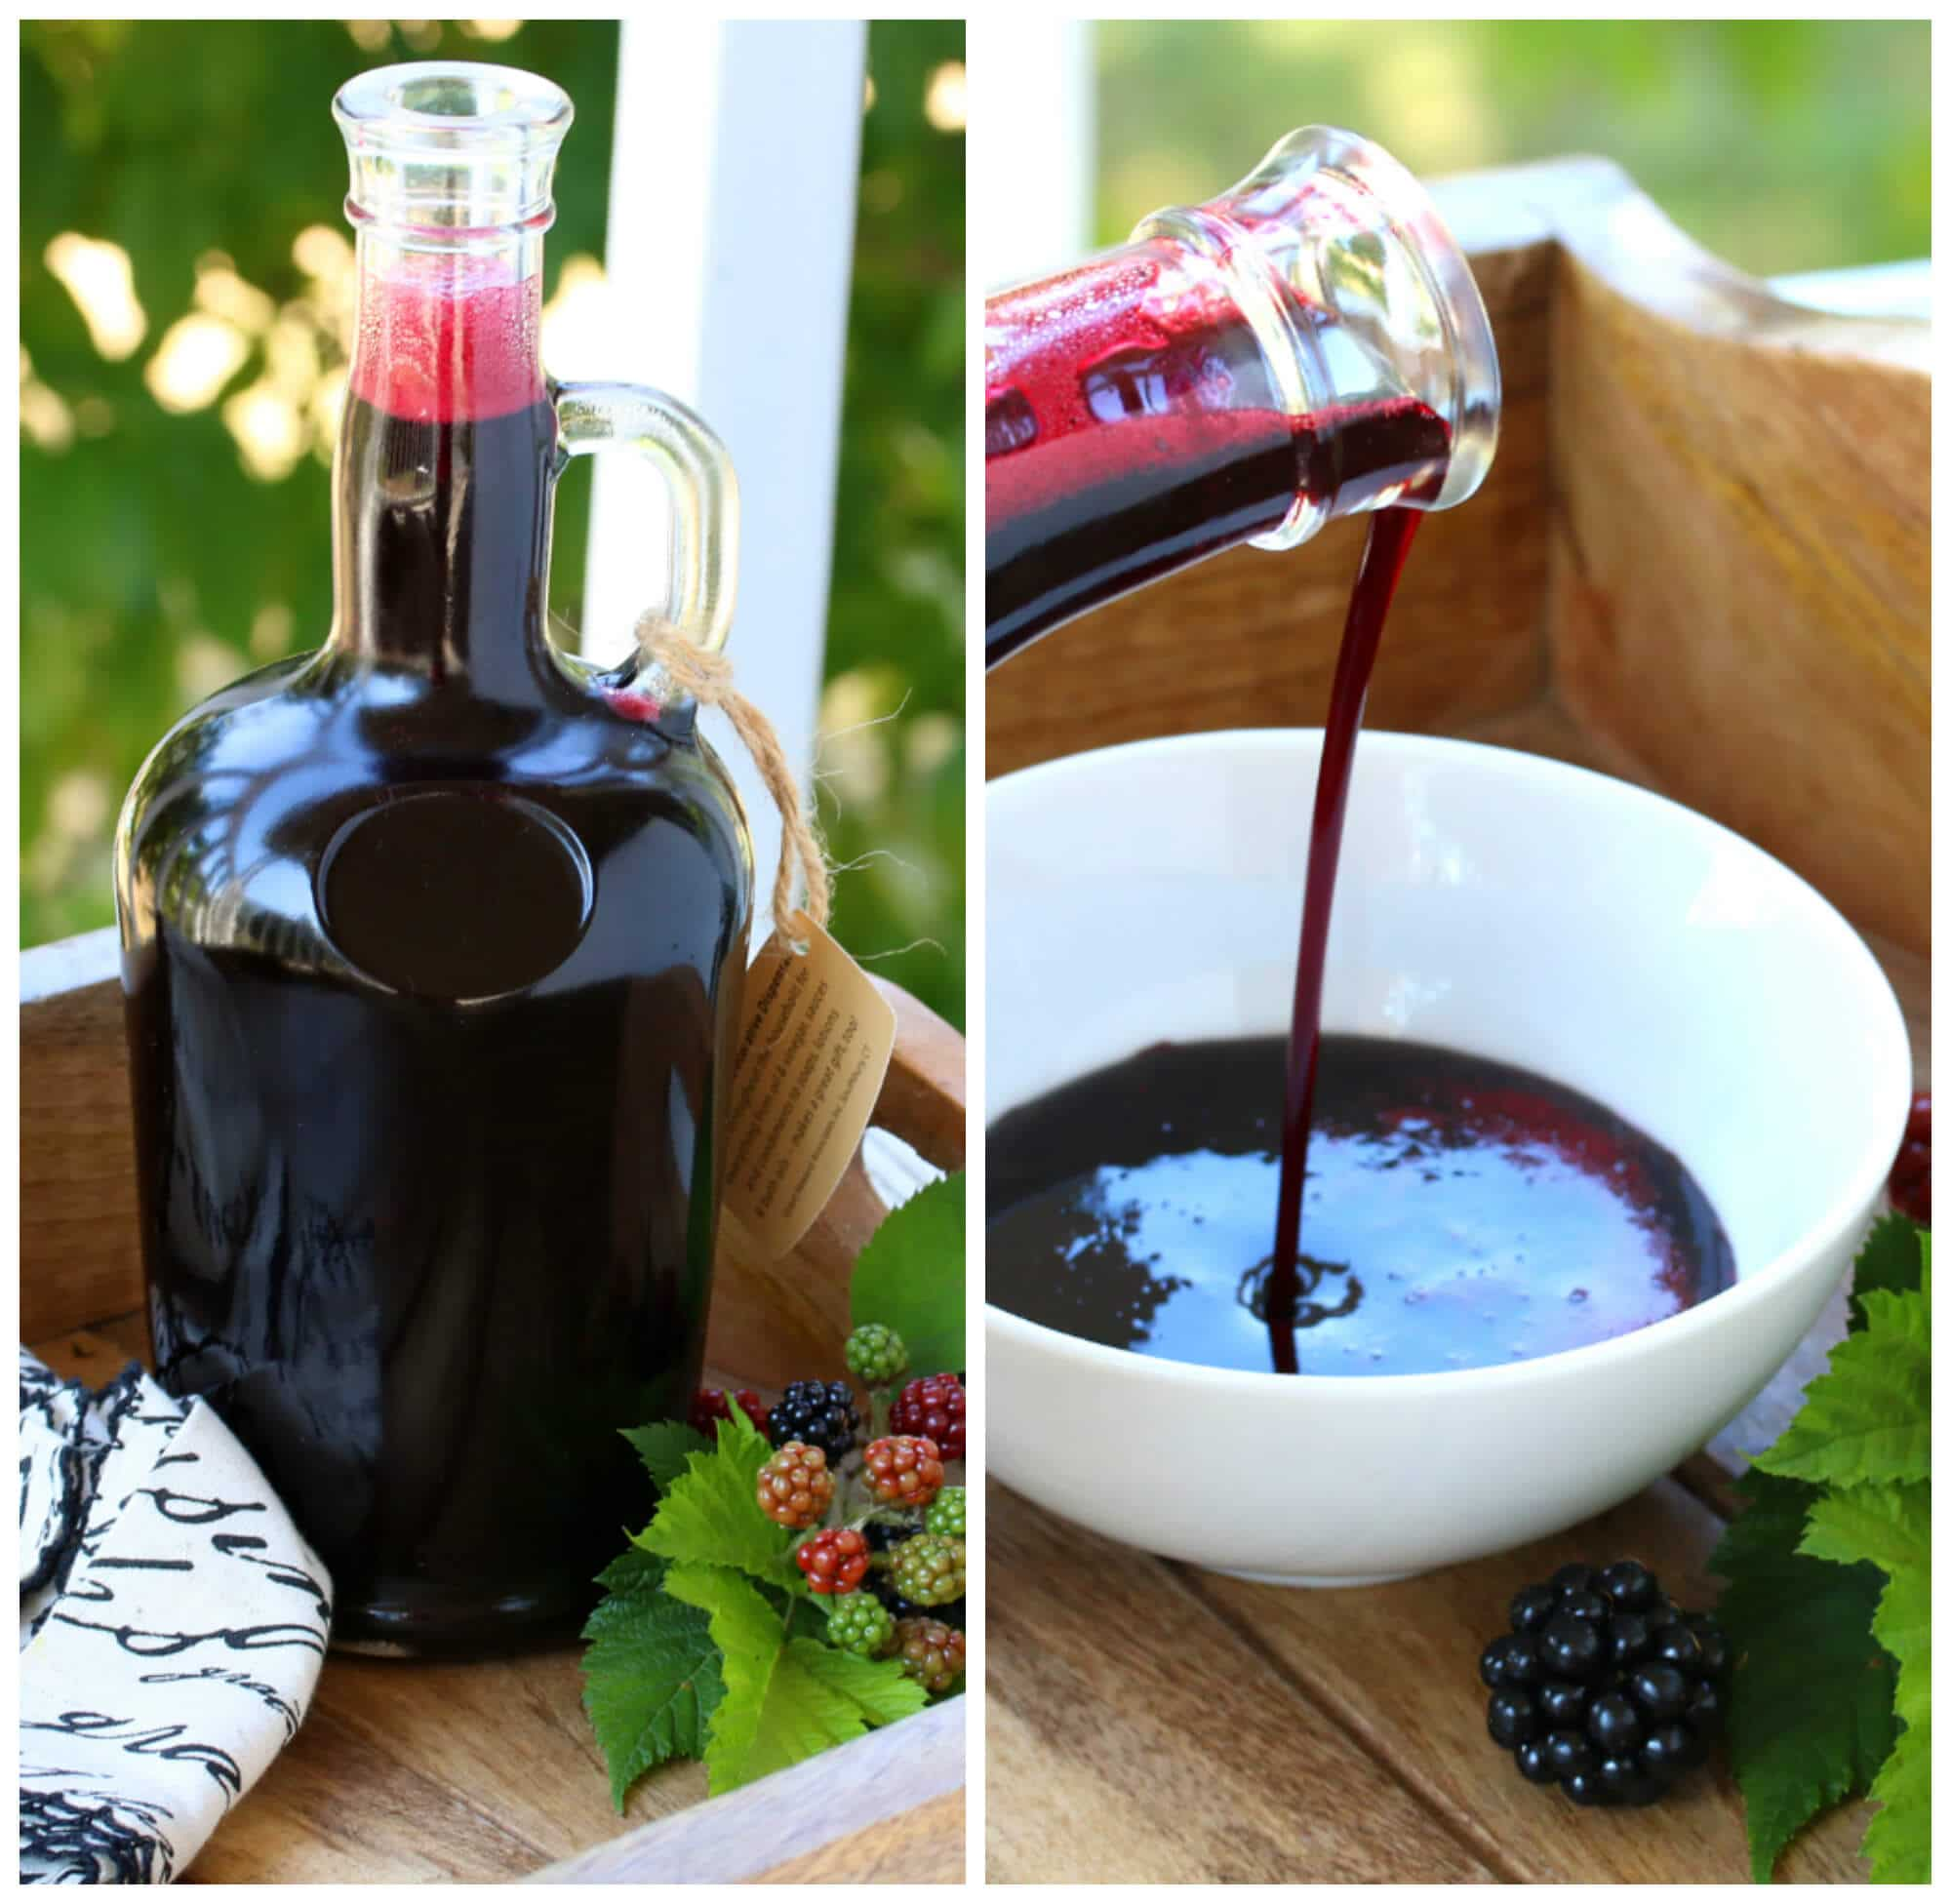 blackberry berry syrup recipe homemade sauce pancake waffle ice cream cake crepes canning preserving